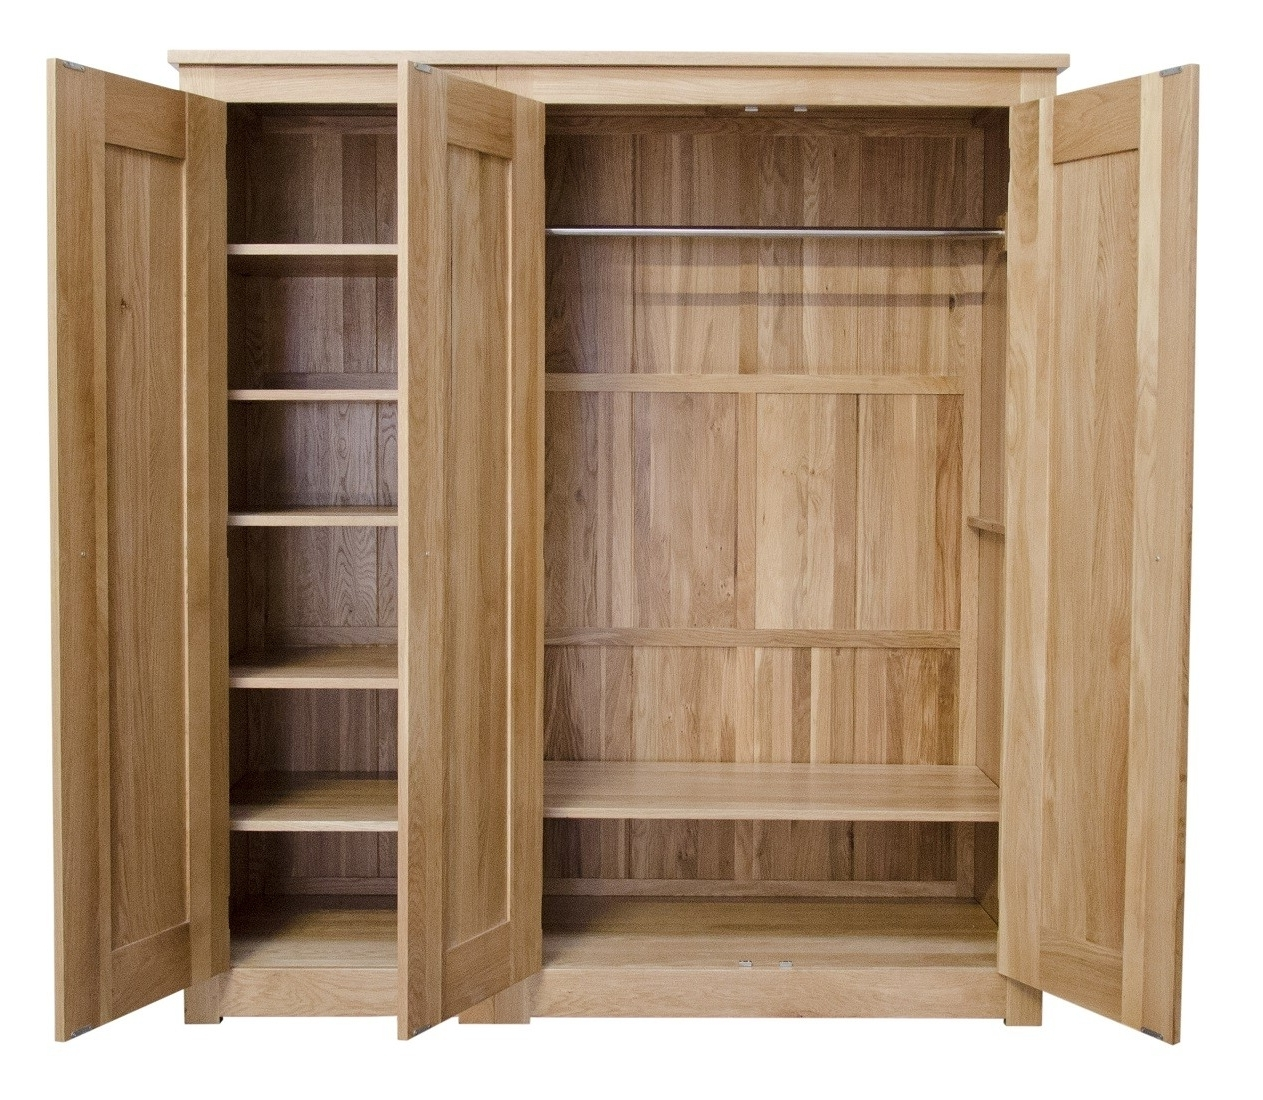 Oak Furniture Uk Regarding Triple Door Wardrobes (View 8 of 15)